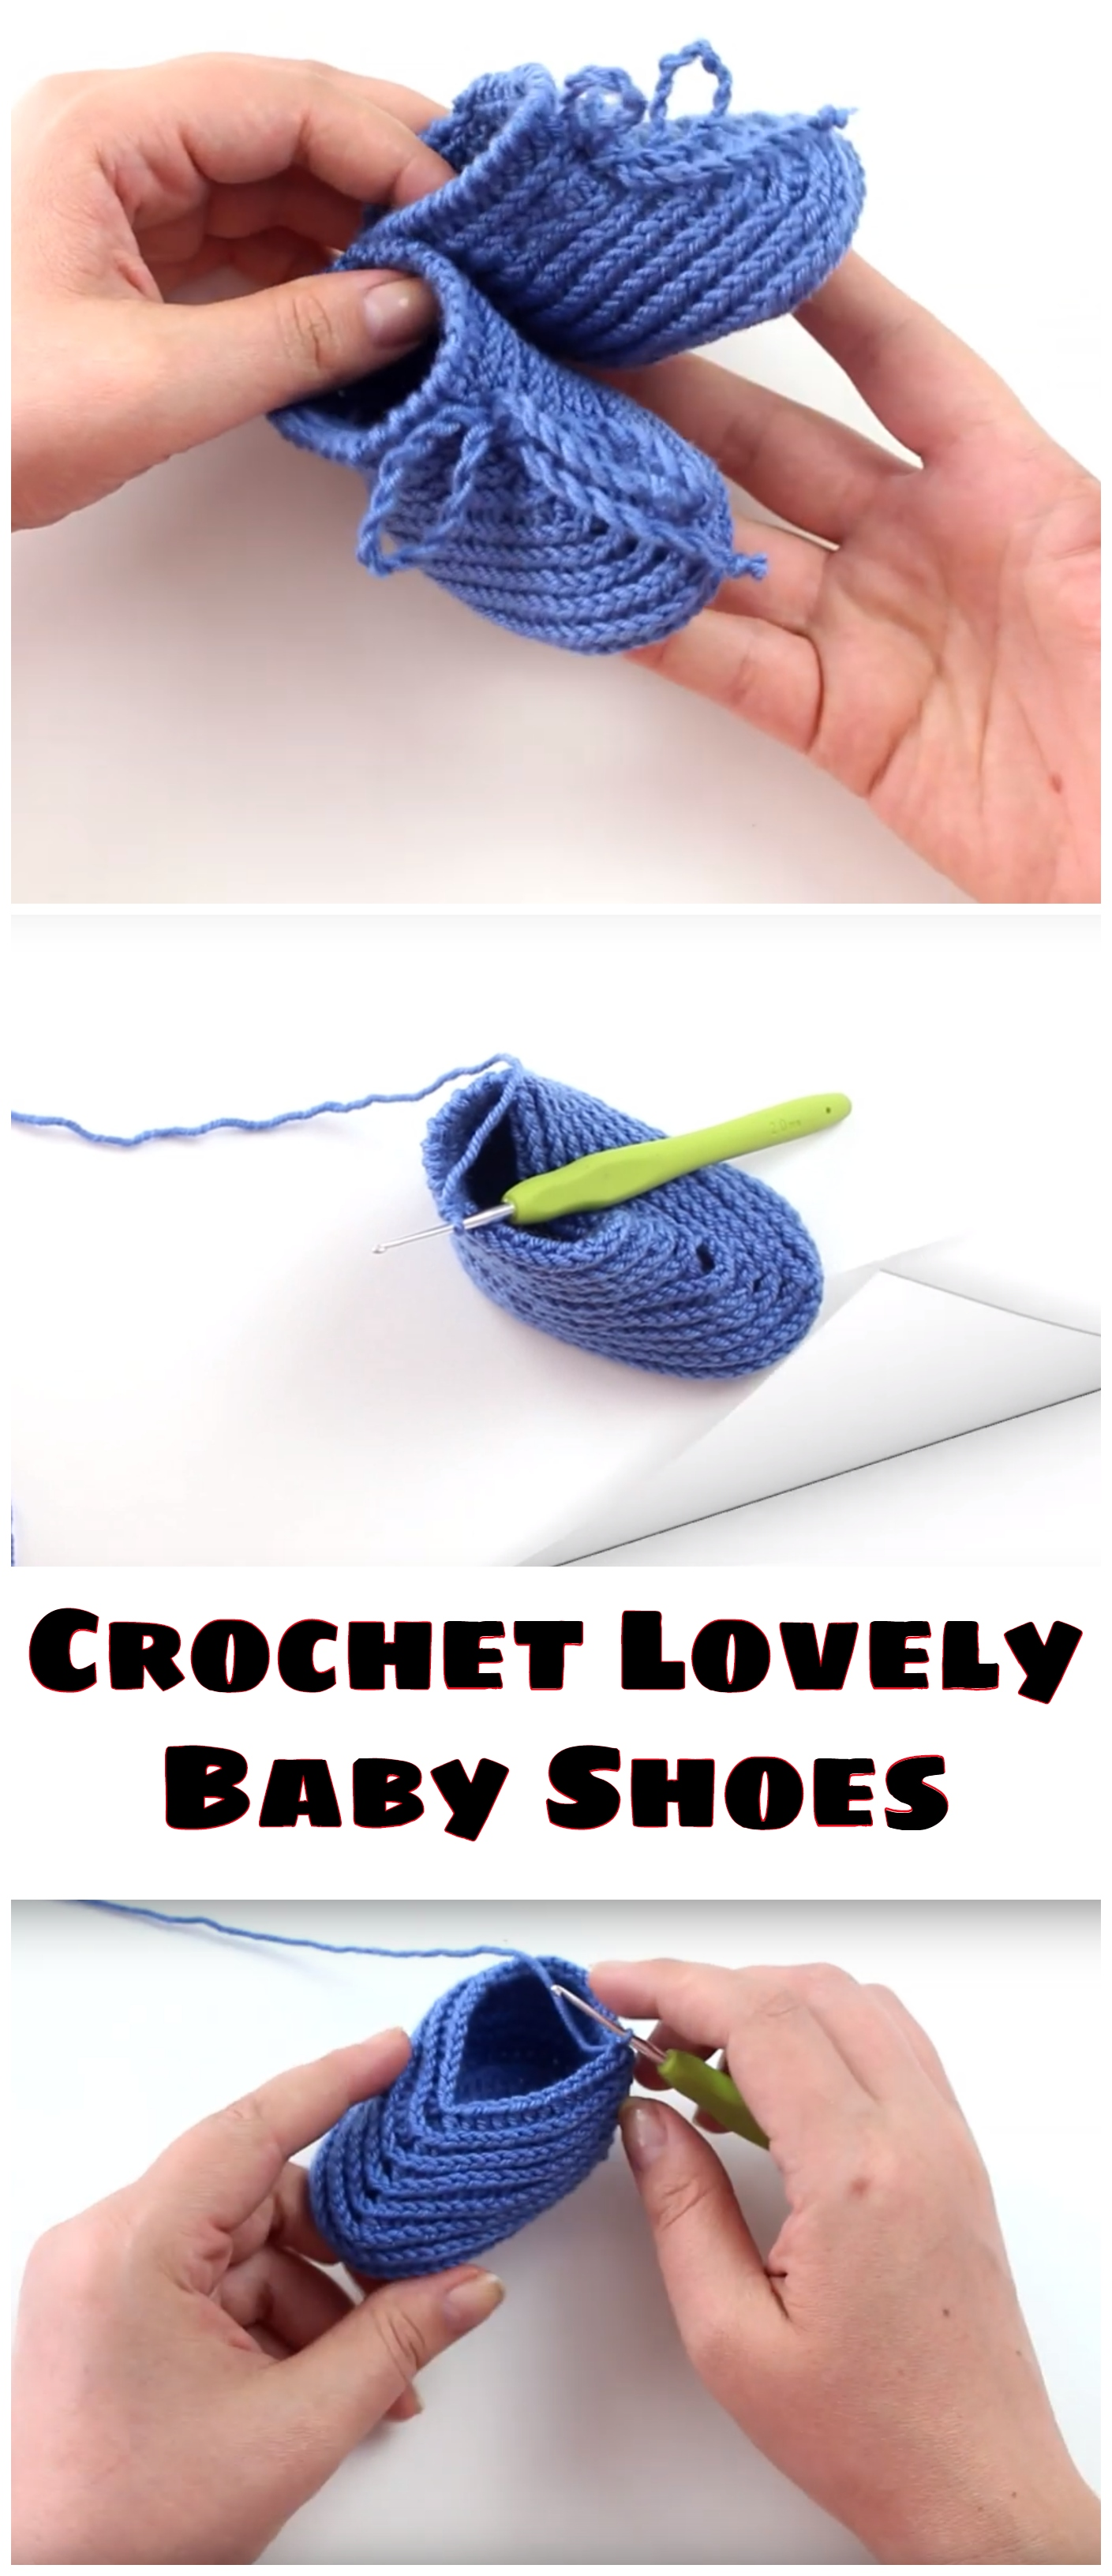 Crochet Lovely Baby Shoes